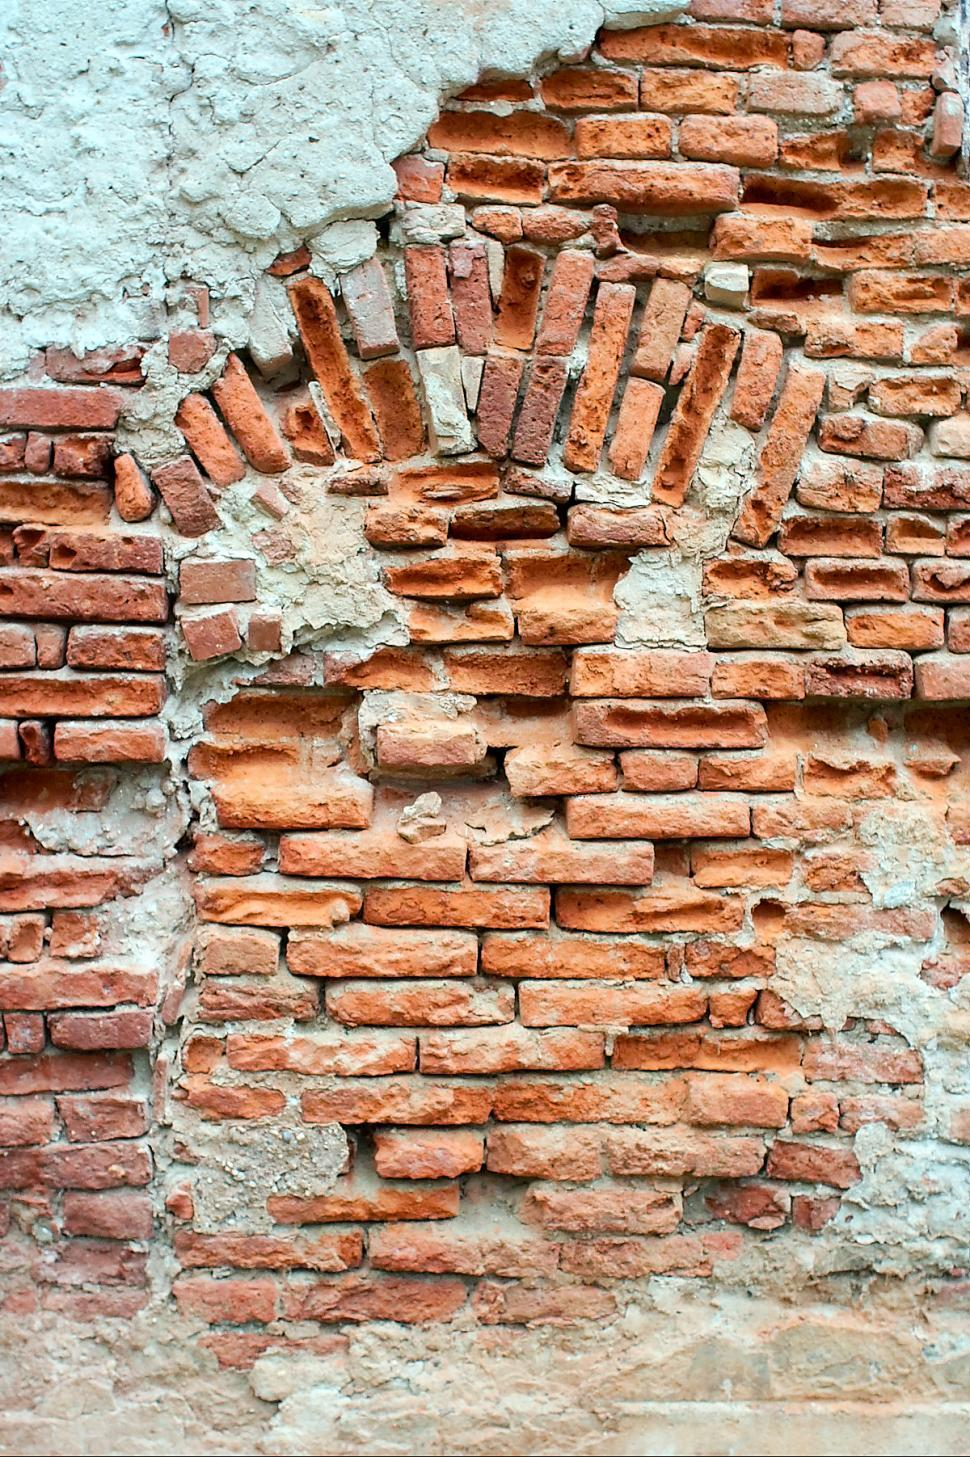 Download Free Stock Photo of Closed, bricked up, window